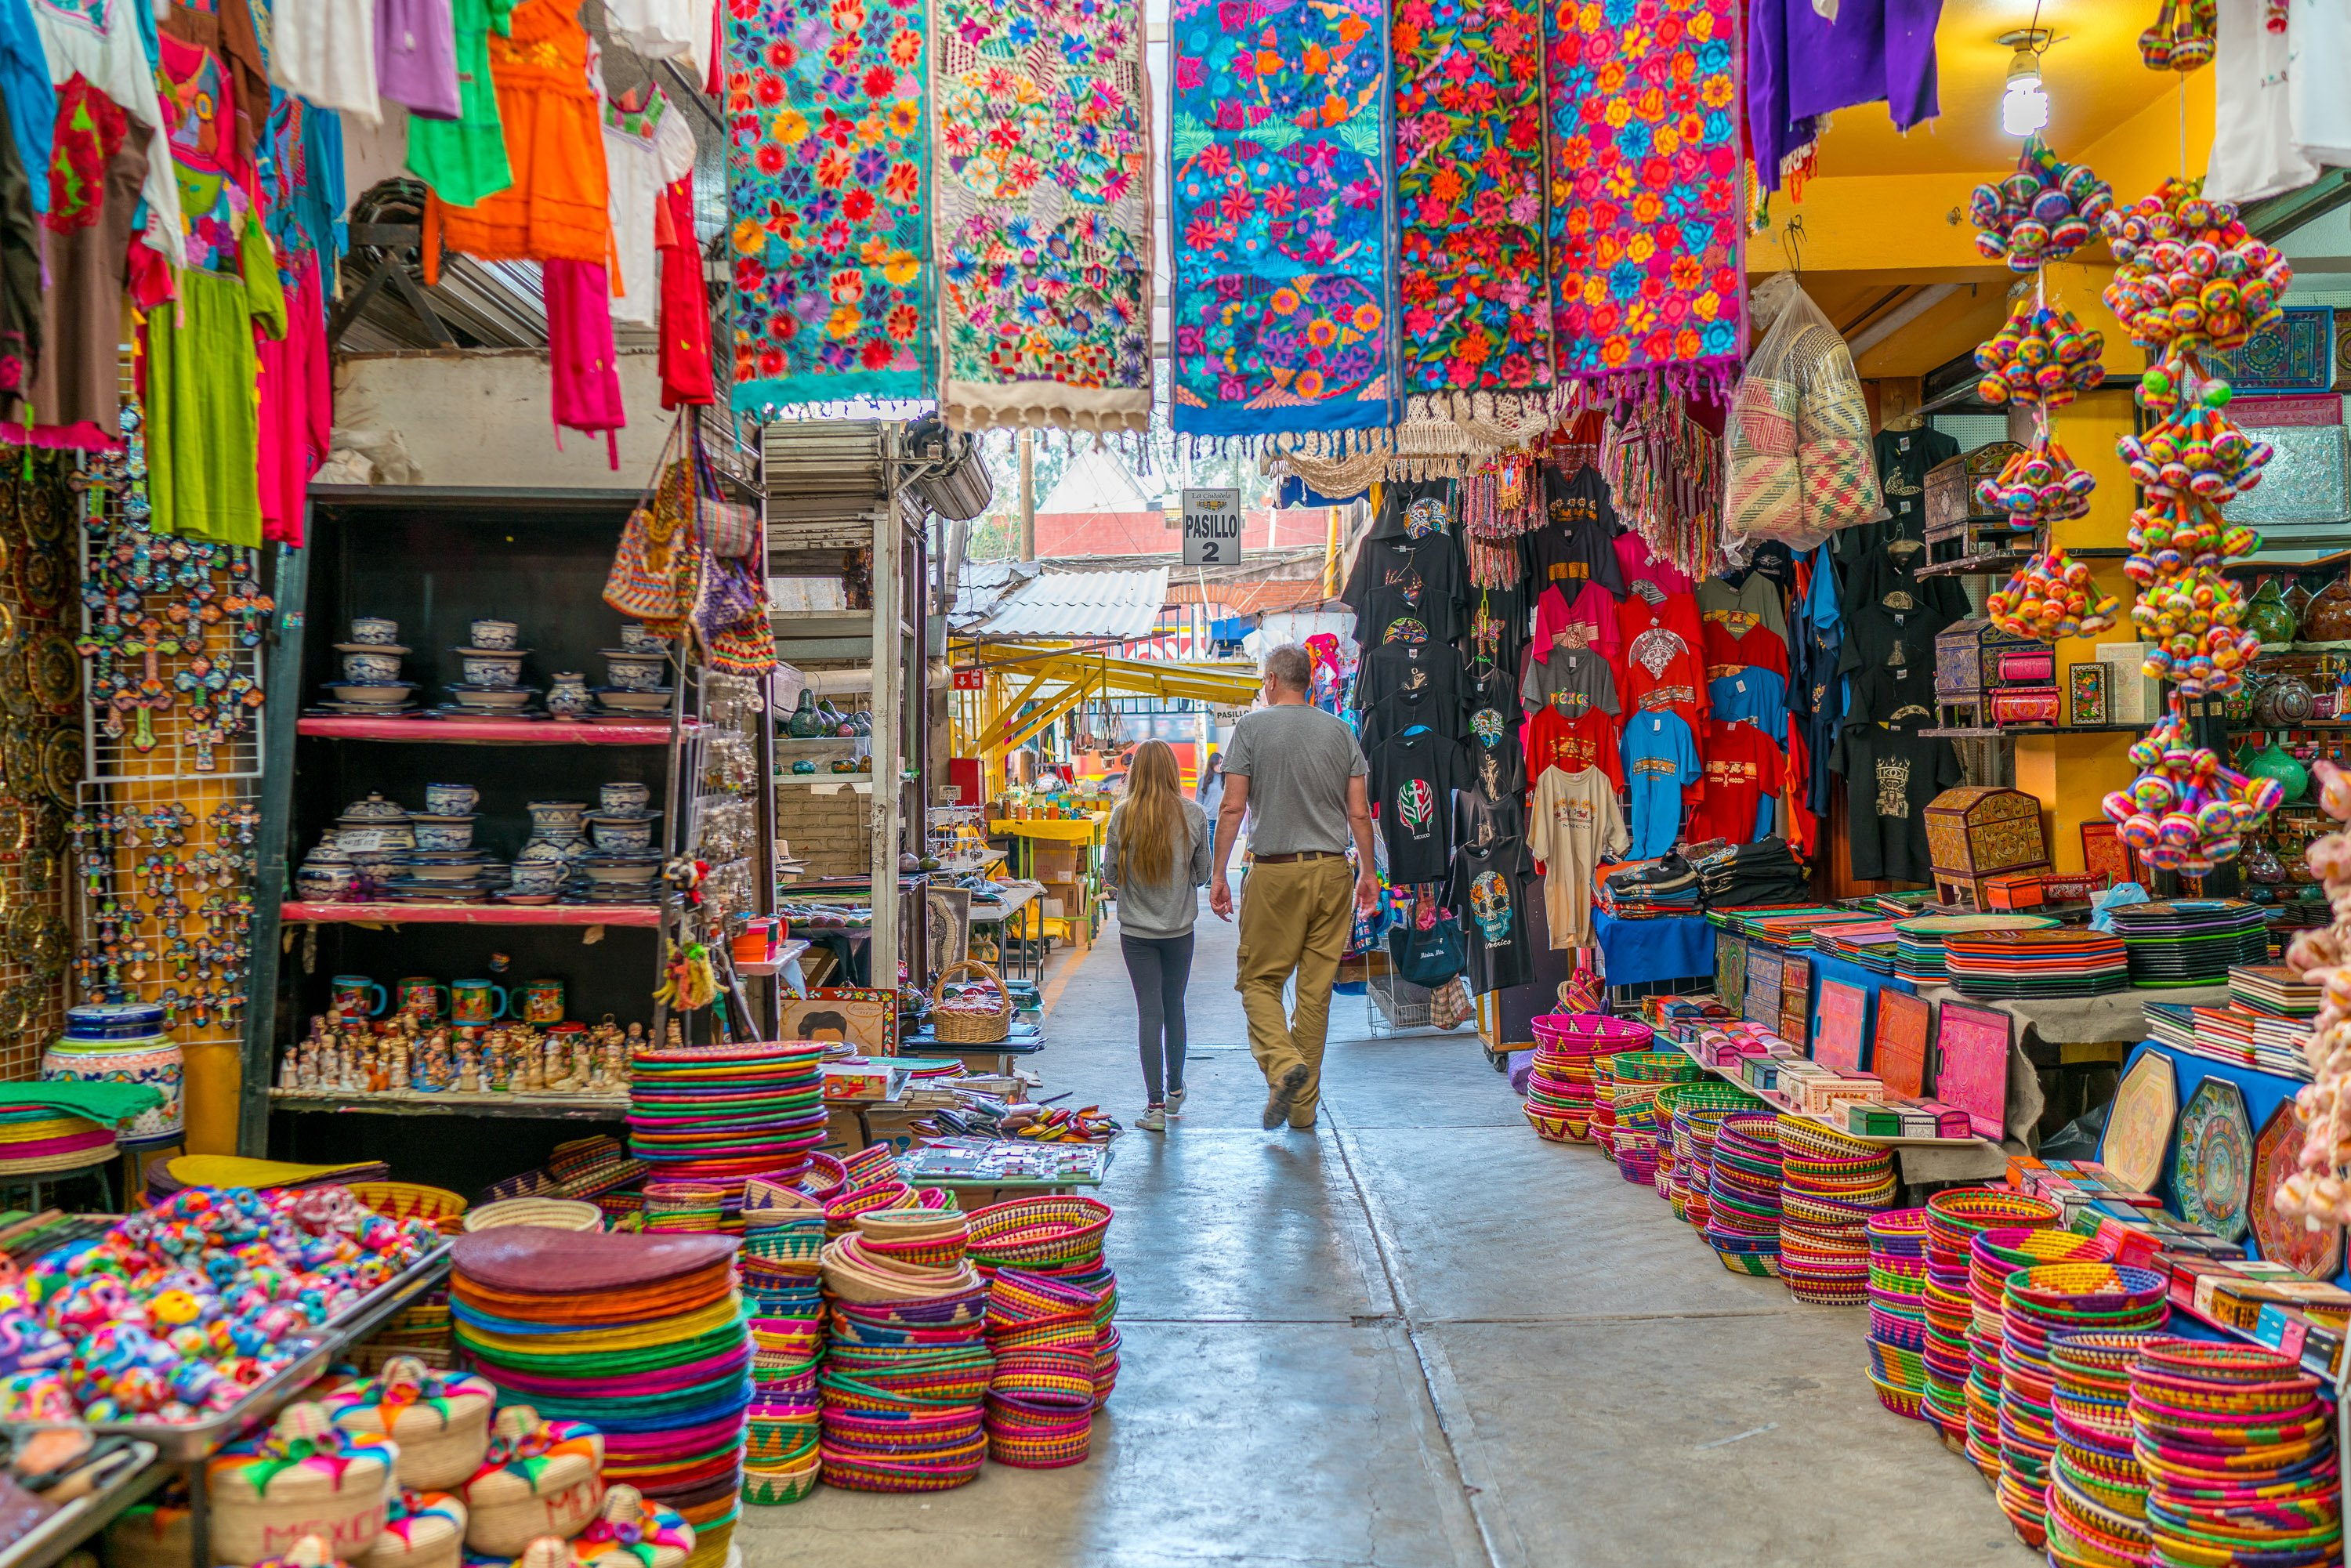 Brightly-colored blankets, hats, and ceramics line an aisle inside of La Ciudadela market in Mexico City.